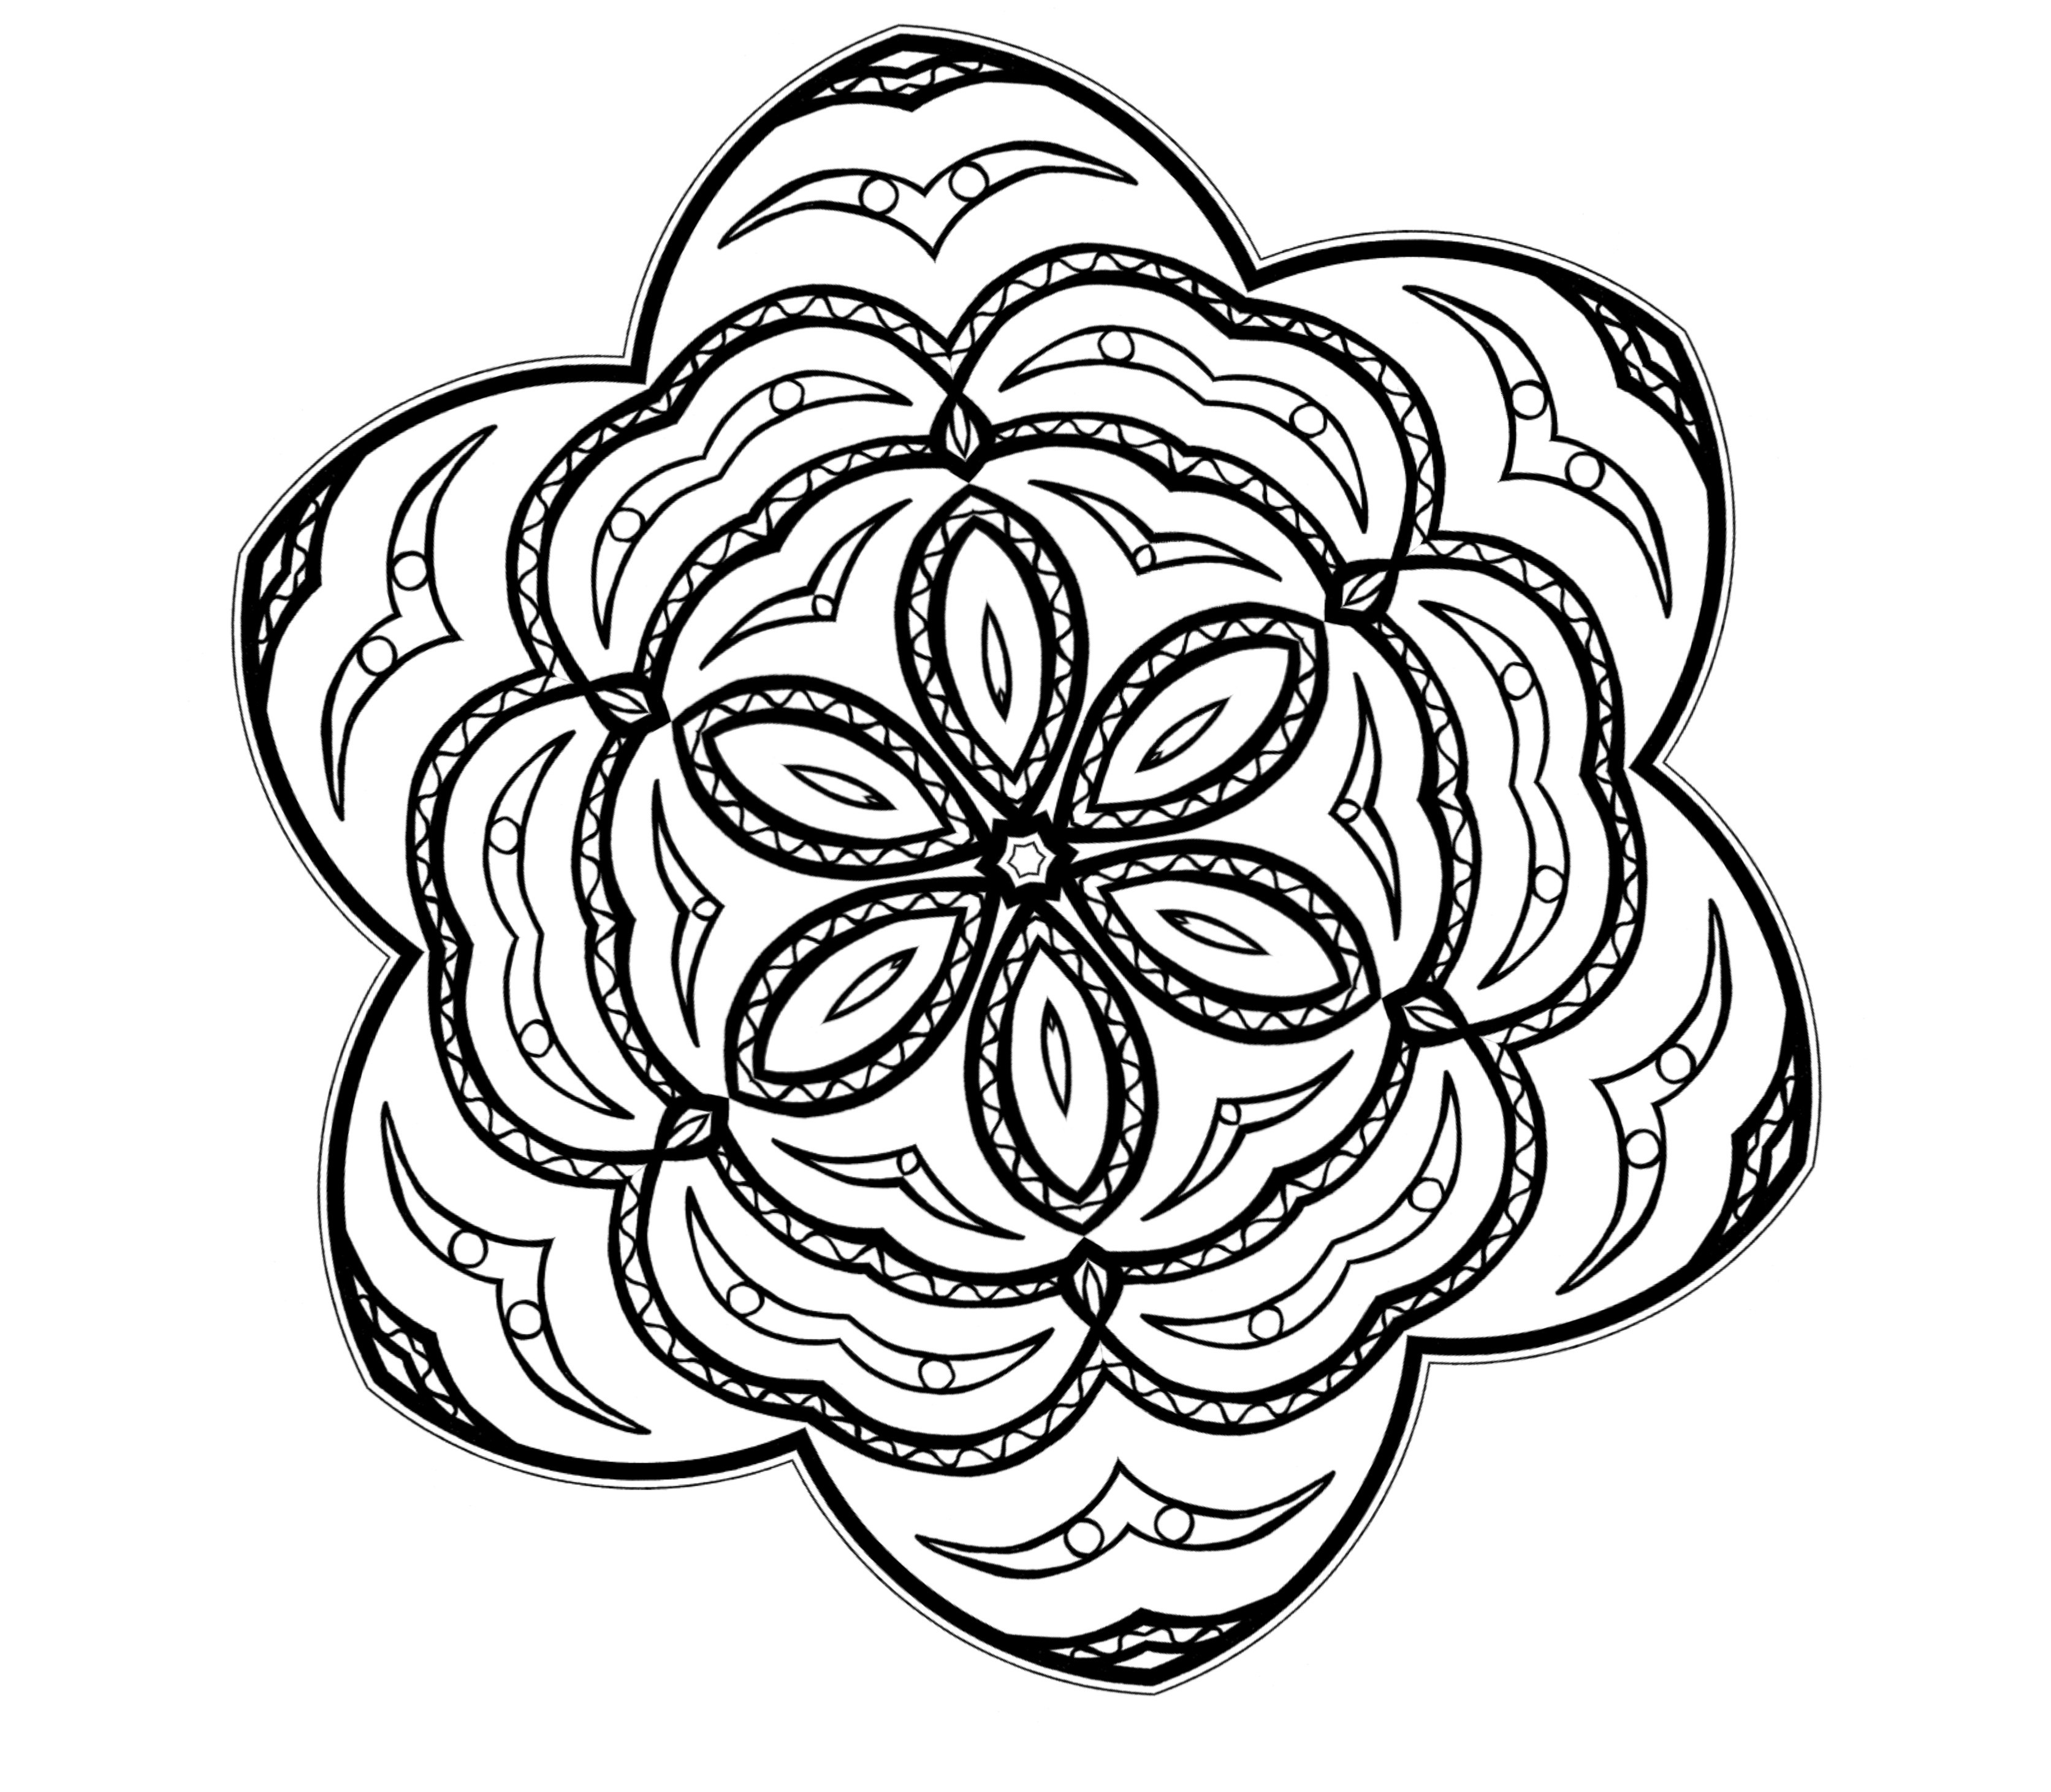 Coloring pages abstract - Free Printable Abstract Coloring Pages